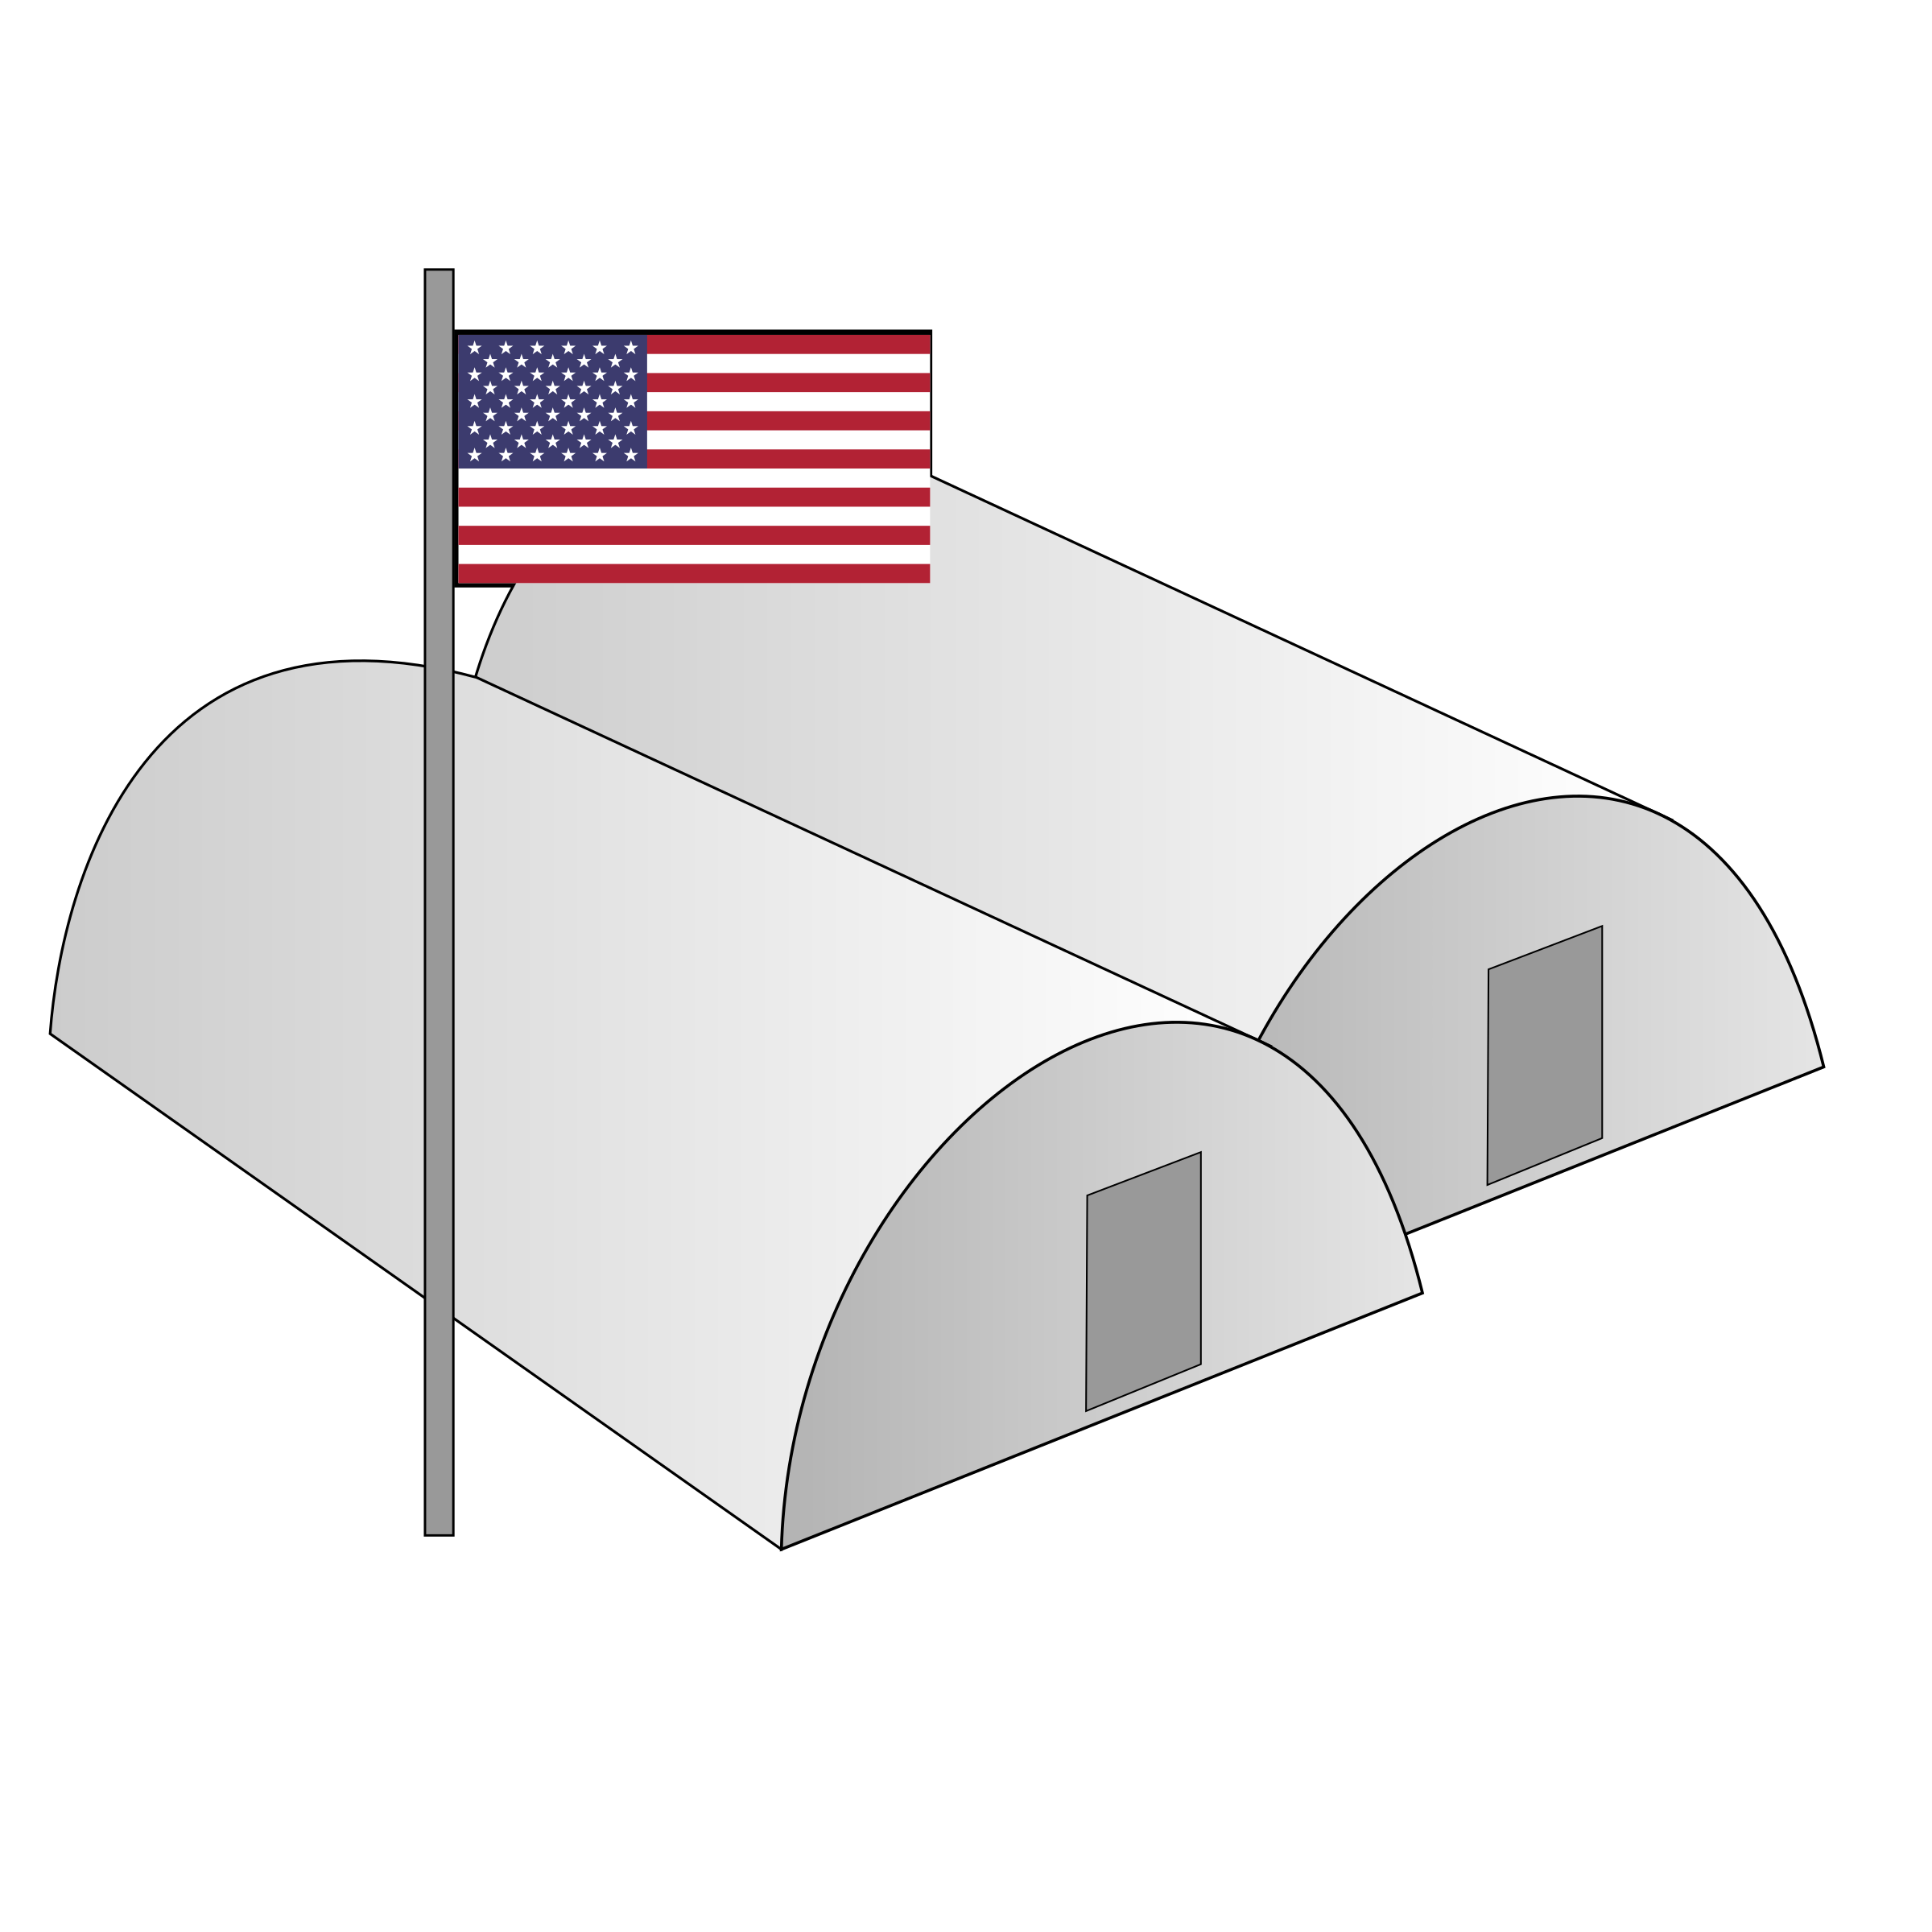 Military base clipart.